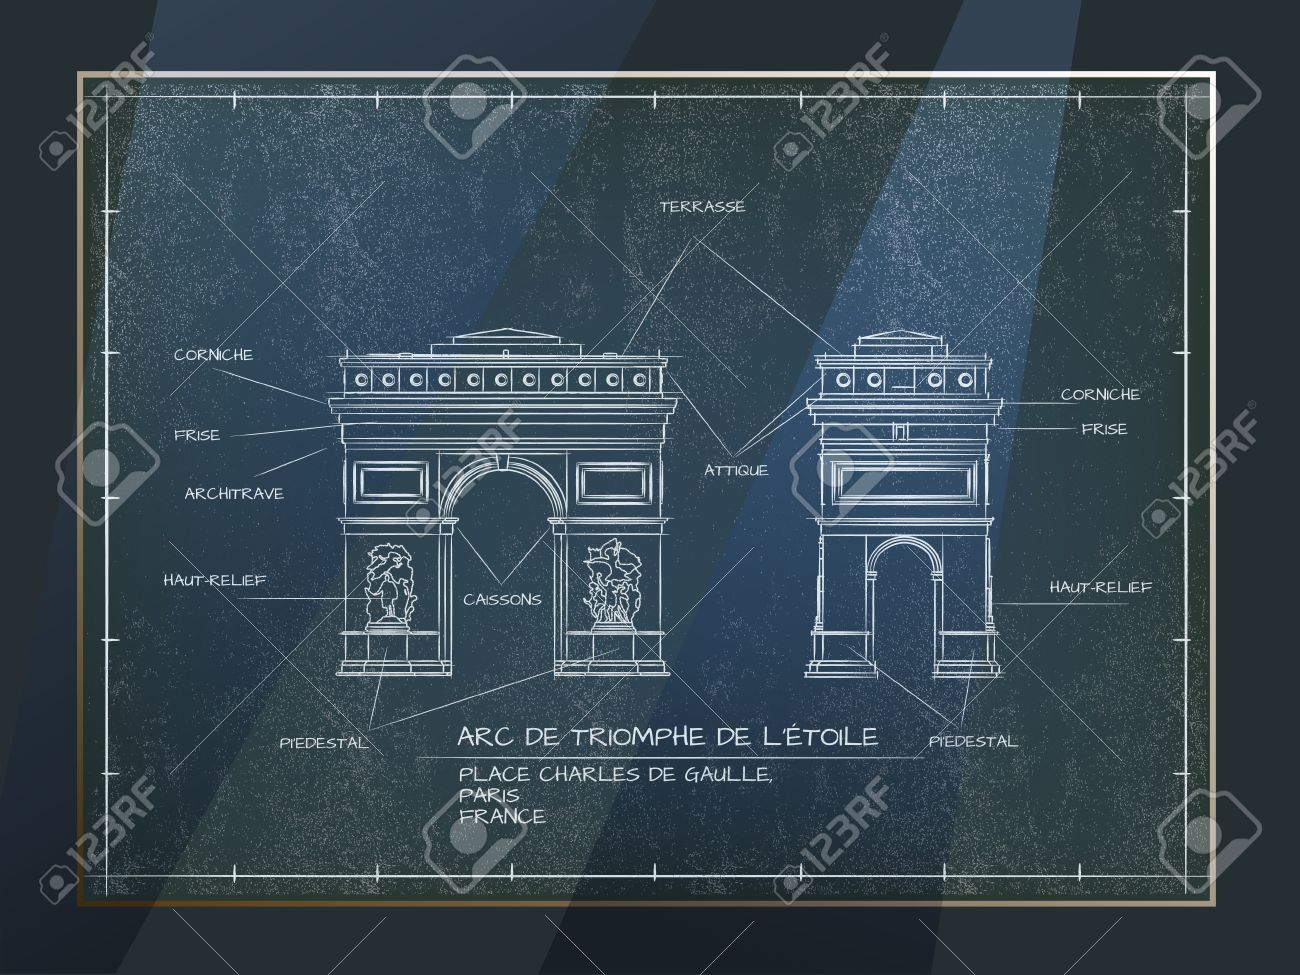 Vintage Architectural Blueprints Old Style Architectural Blueprint Technical Drawing Of Arc De